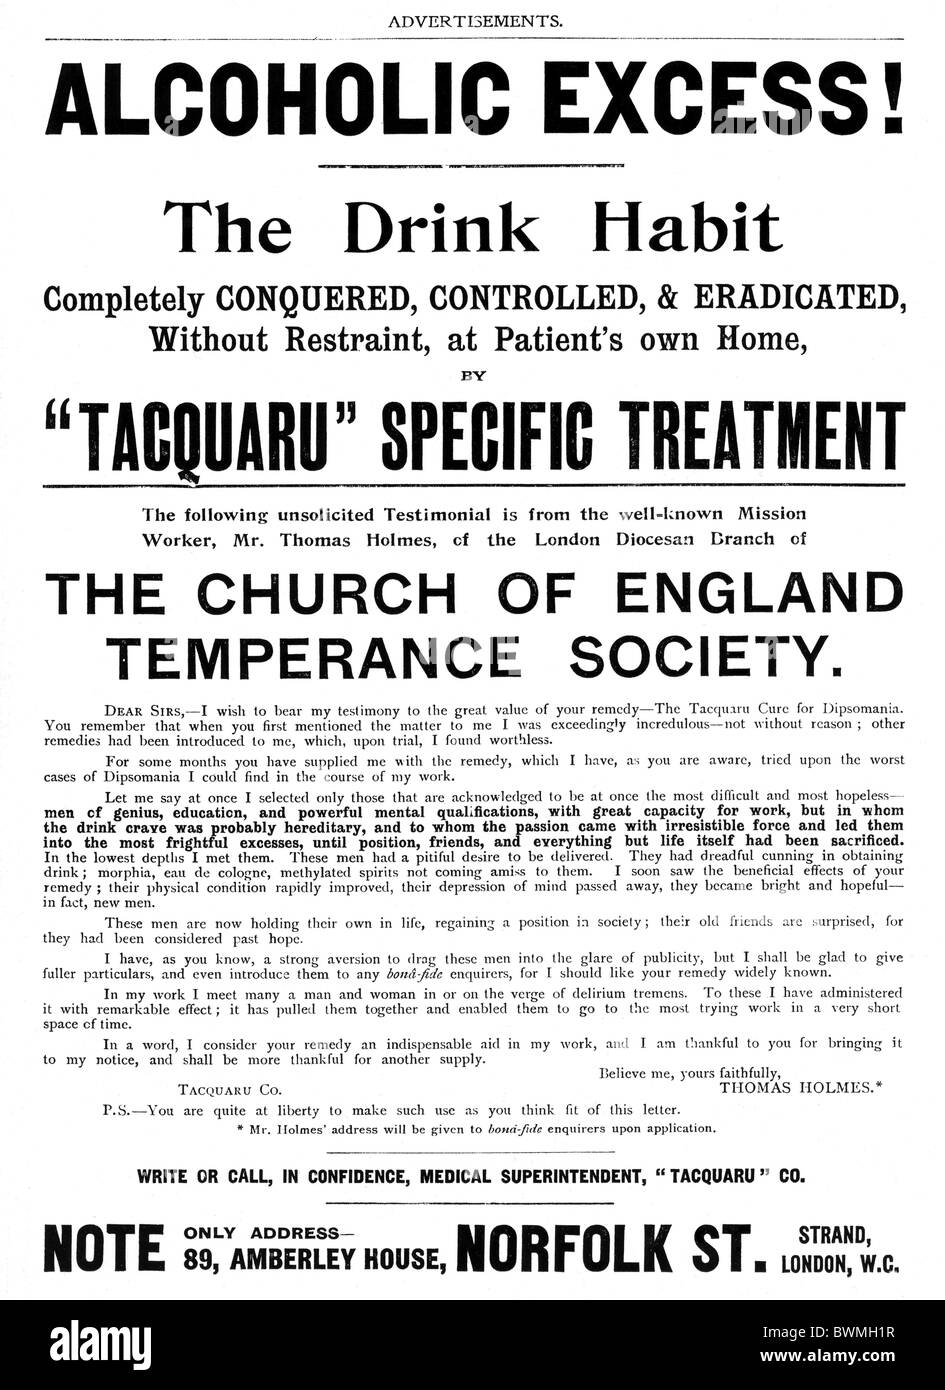 Tacquaru Treatment, 1901 advert for a cure for Alcoholic Excess, The Drink Habit Completely Conquered Controlled - Stock Image